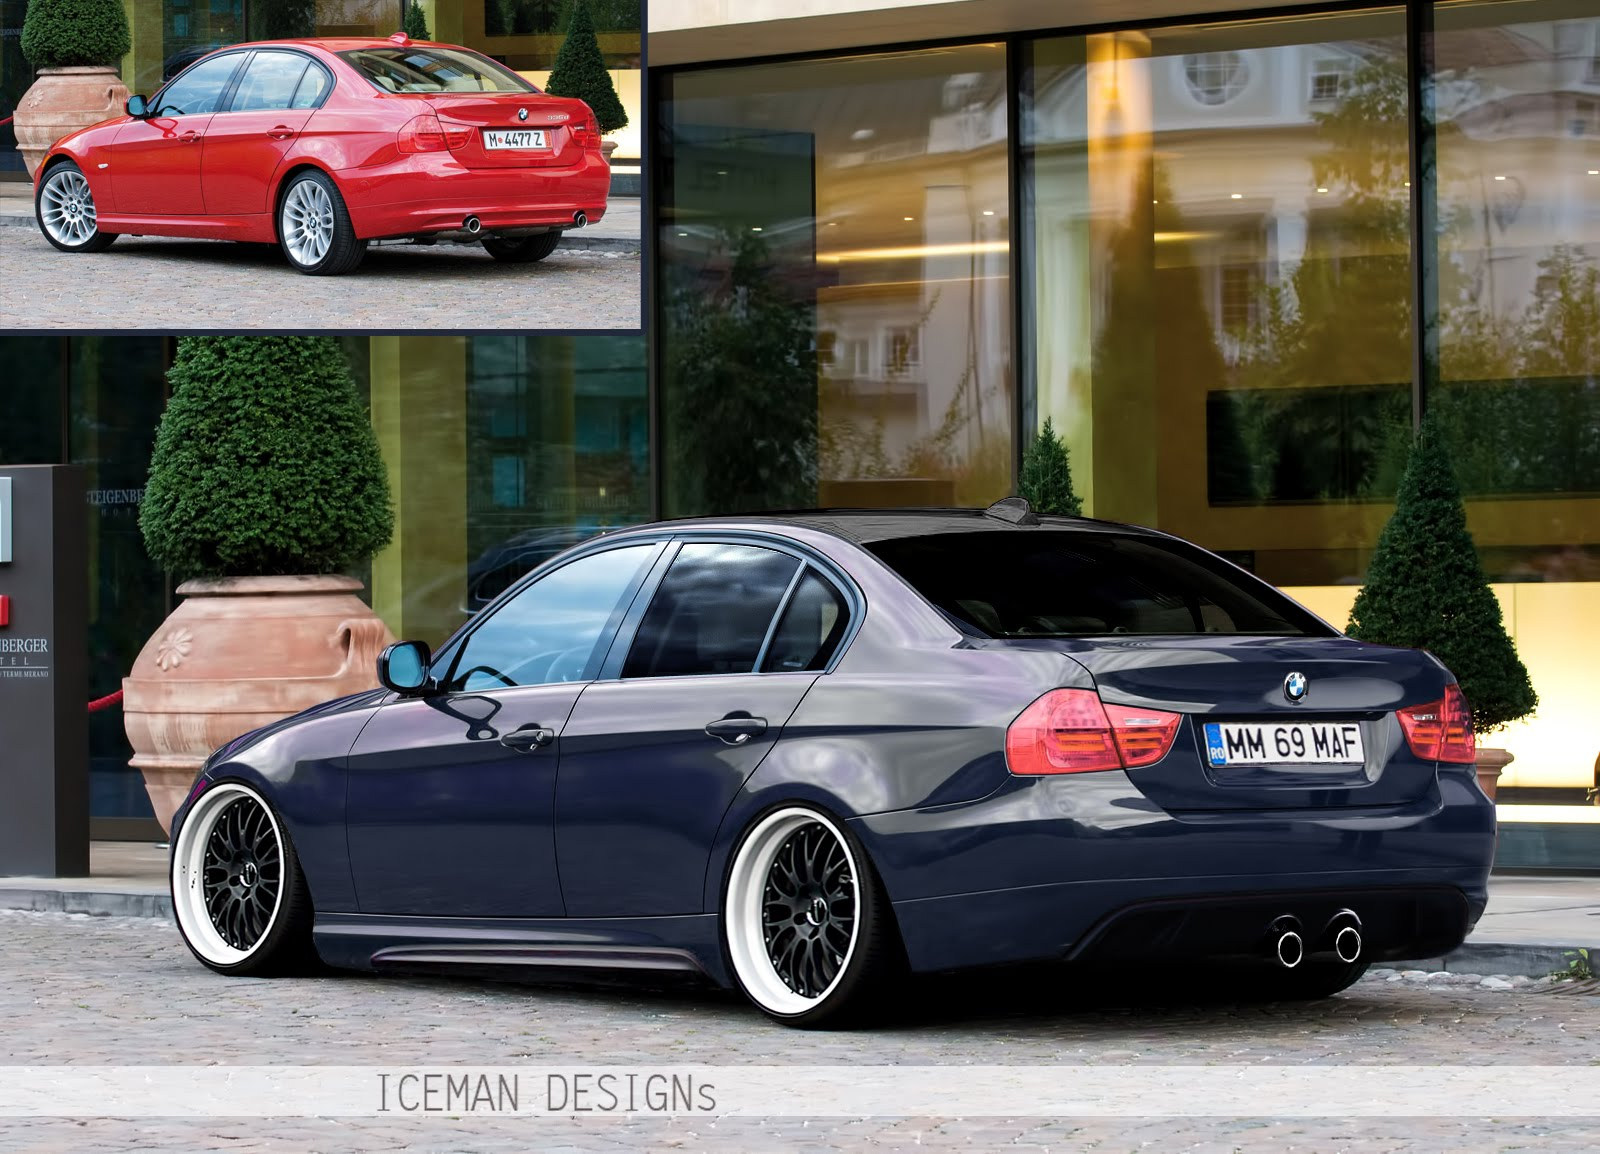 bmw 335d by iceman icemangraphics. Black Bedroom Furniture Sets. Home Design Ideas